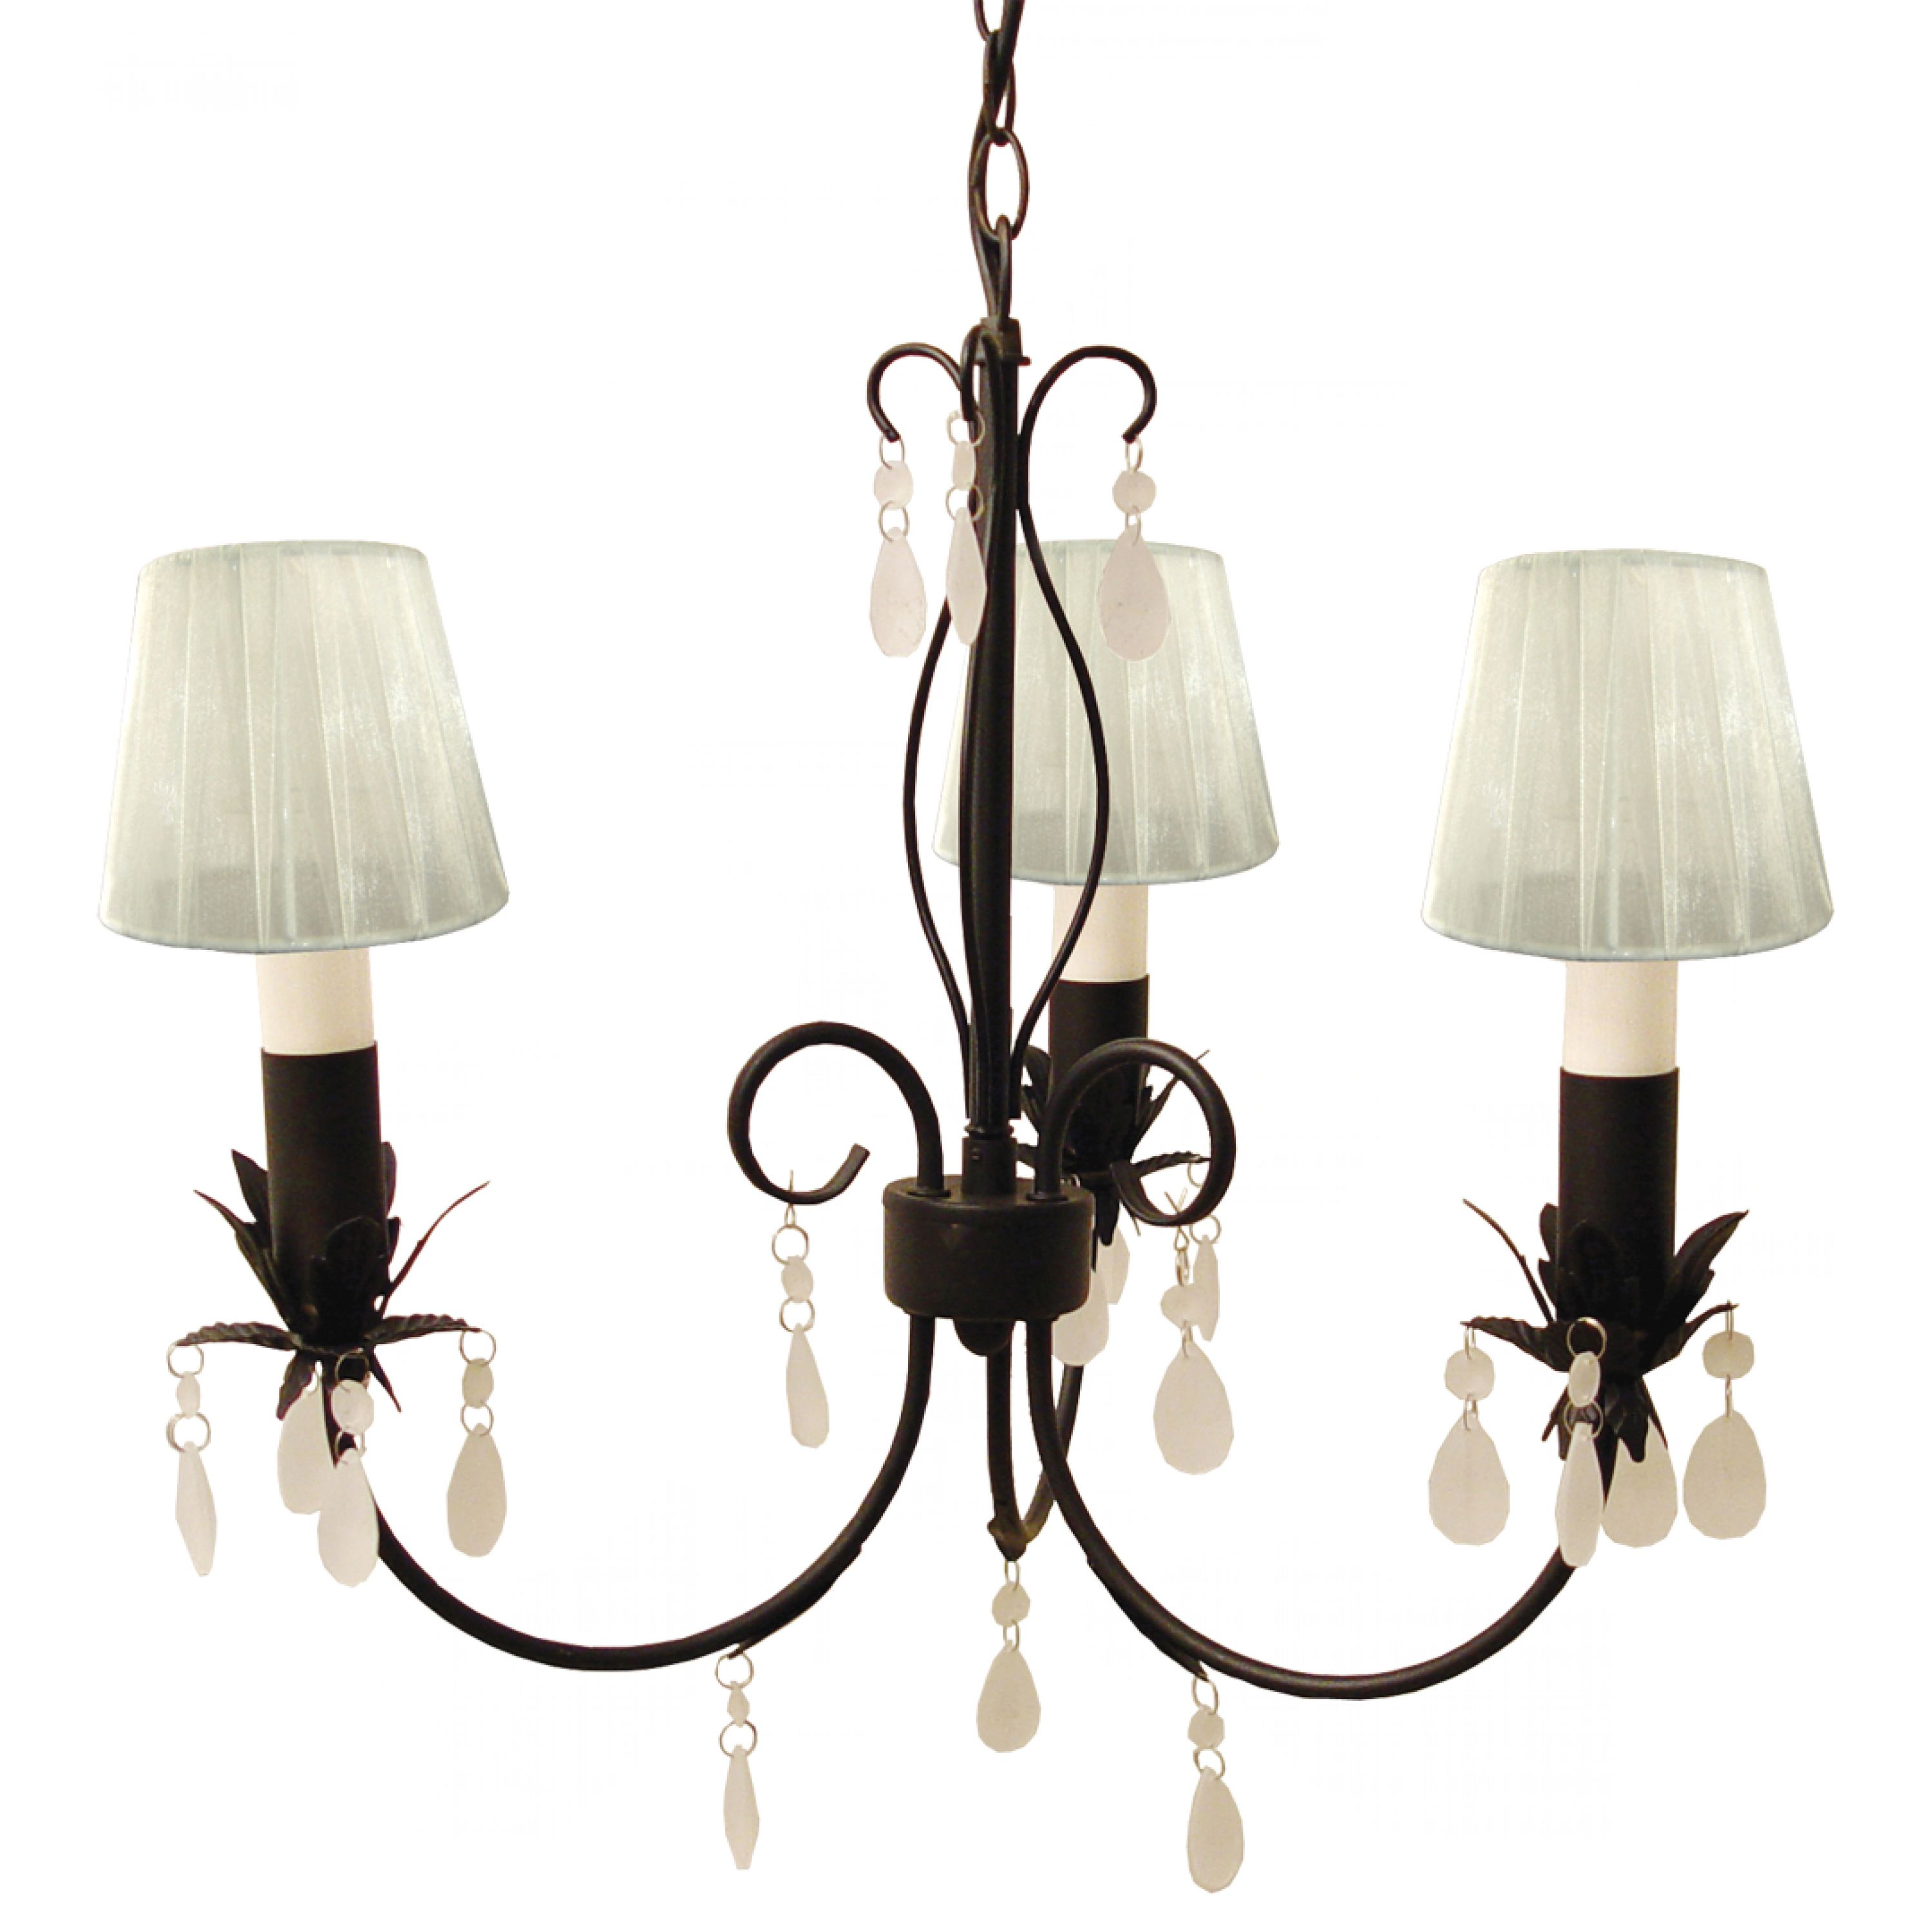 Zanzibar 6 Light (black)